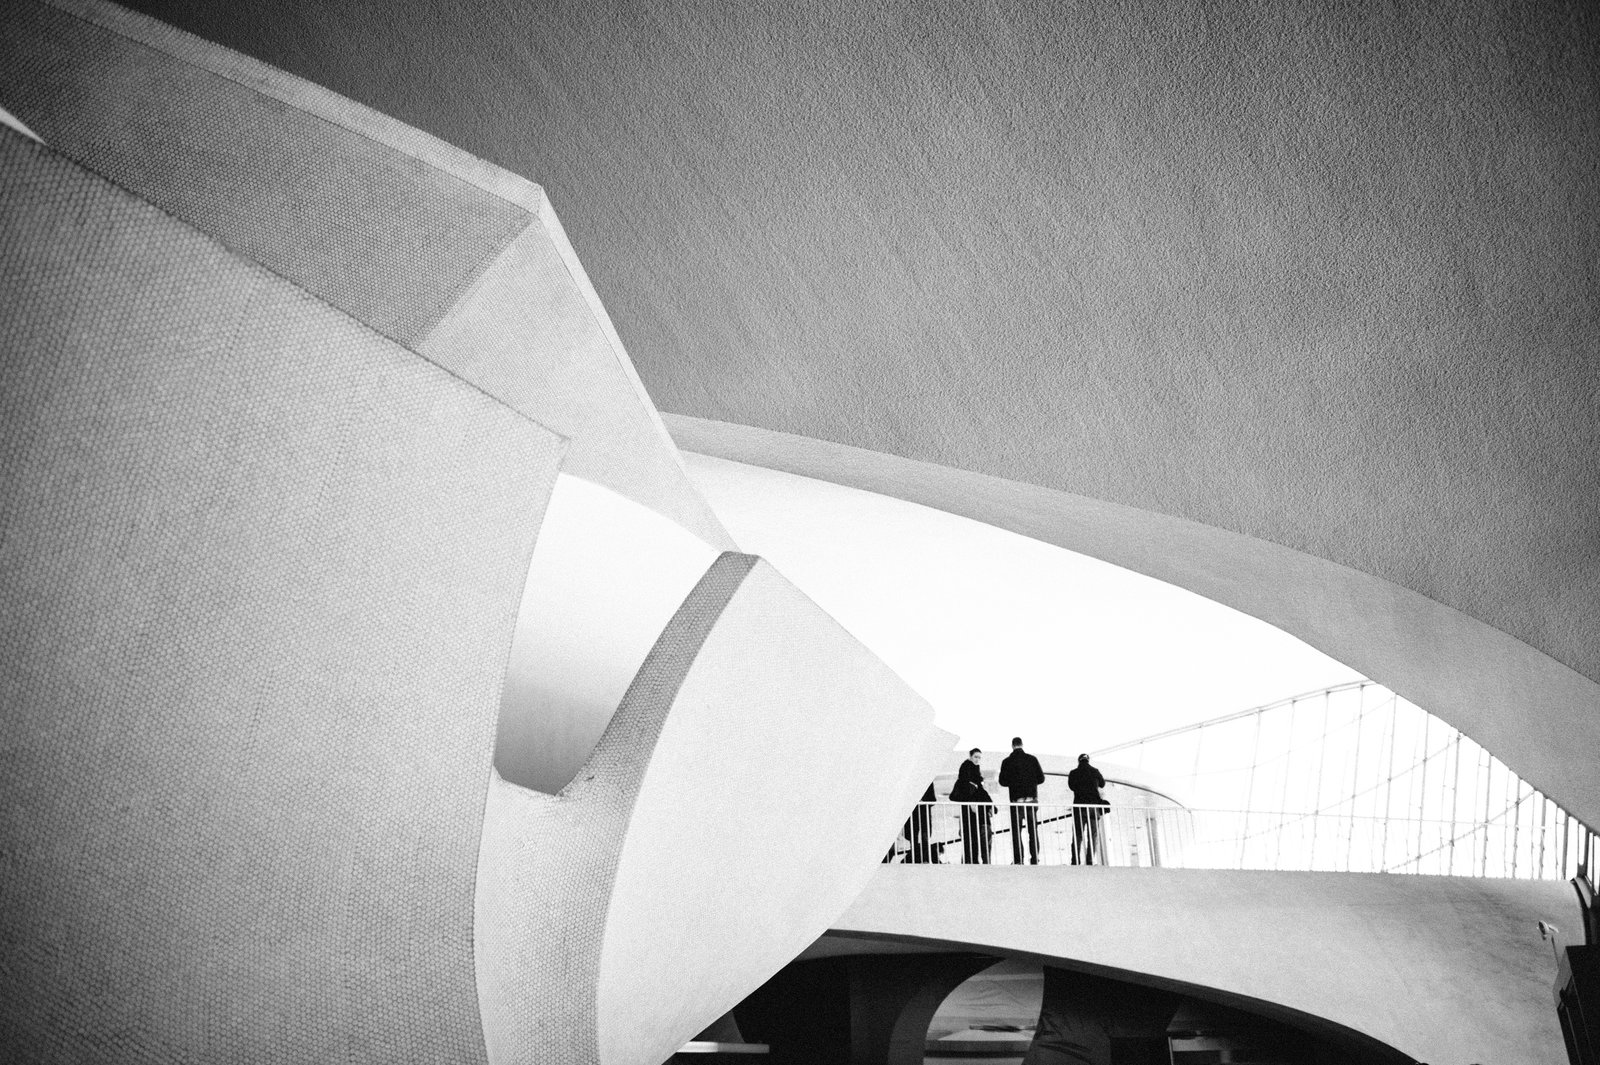 TWA Flight Center by Eero Saarinen